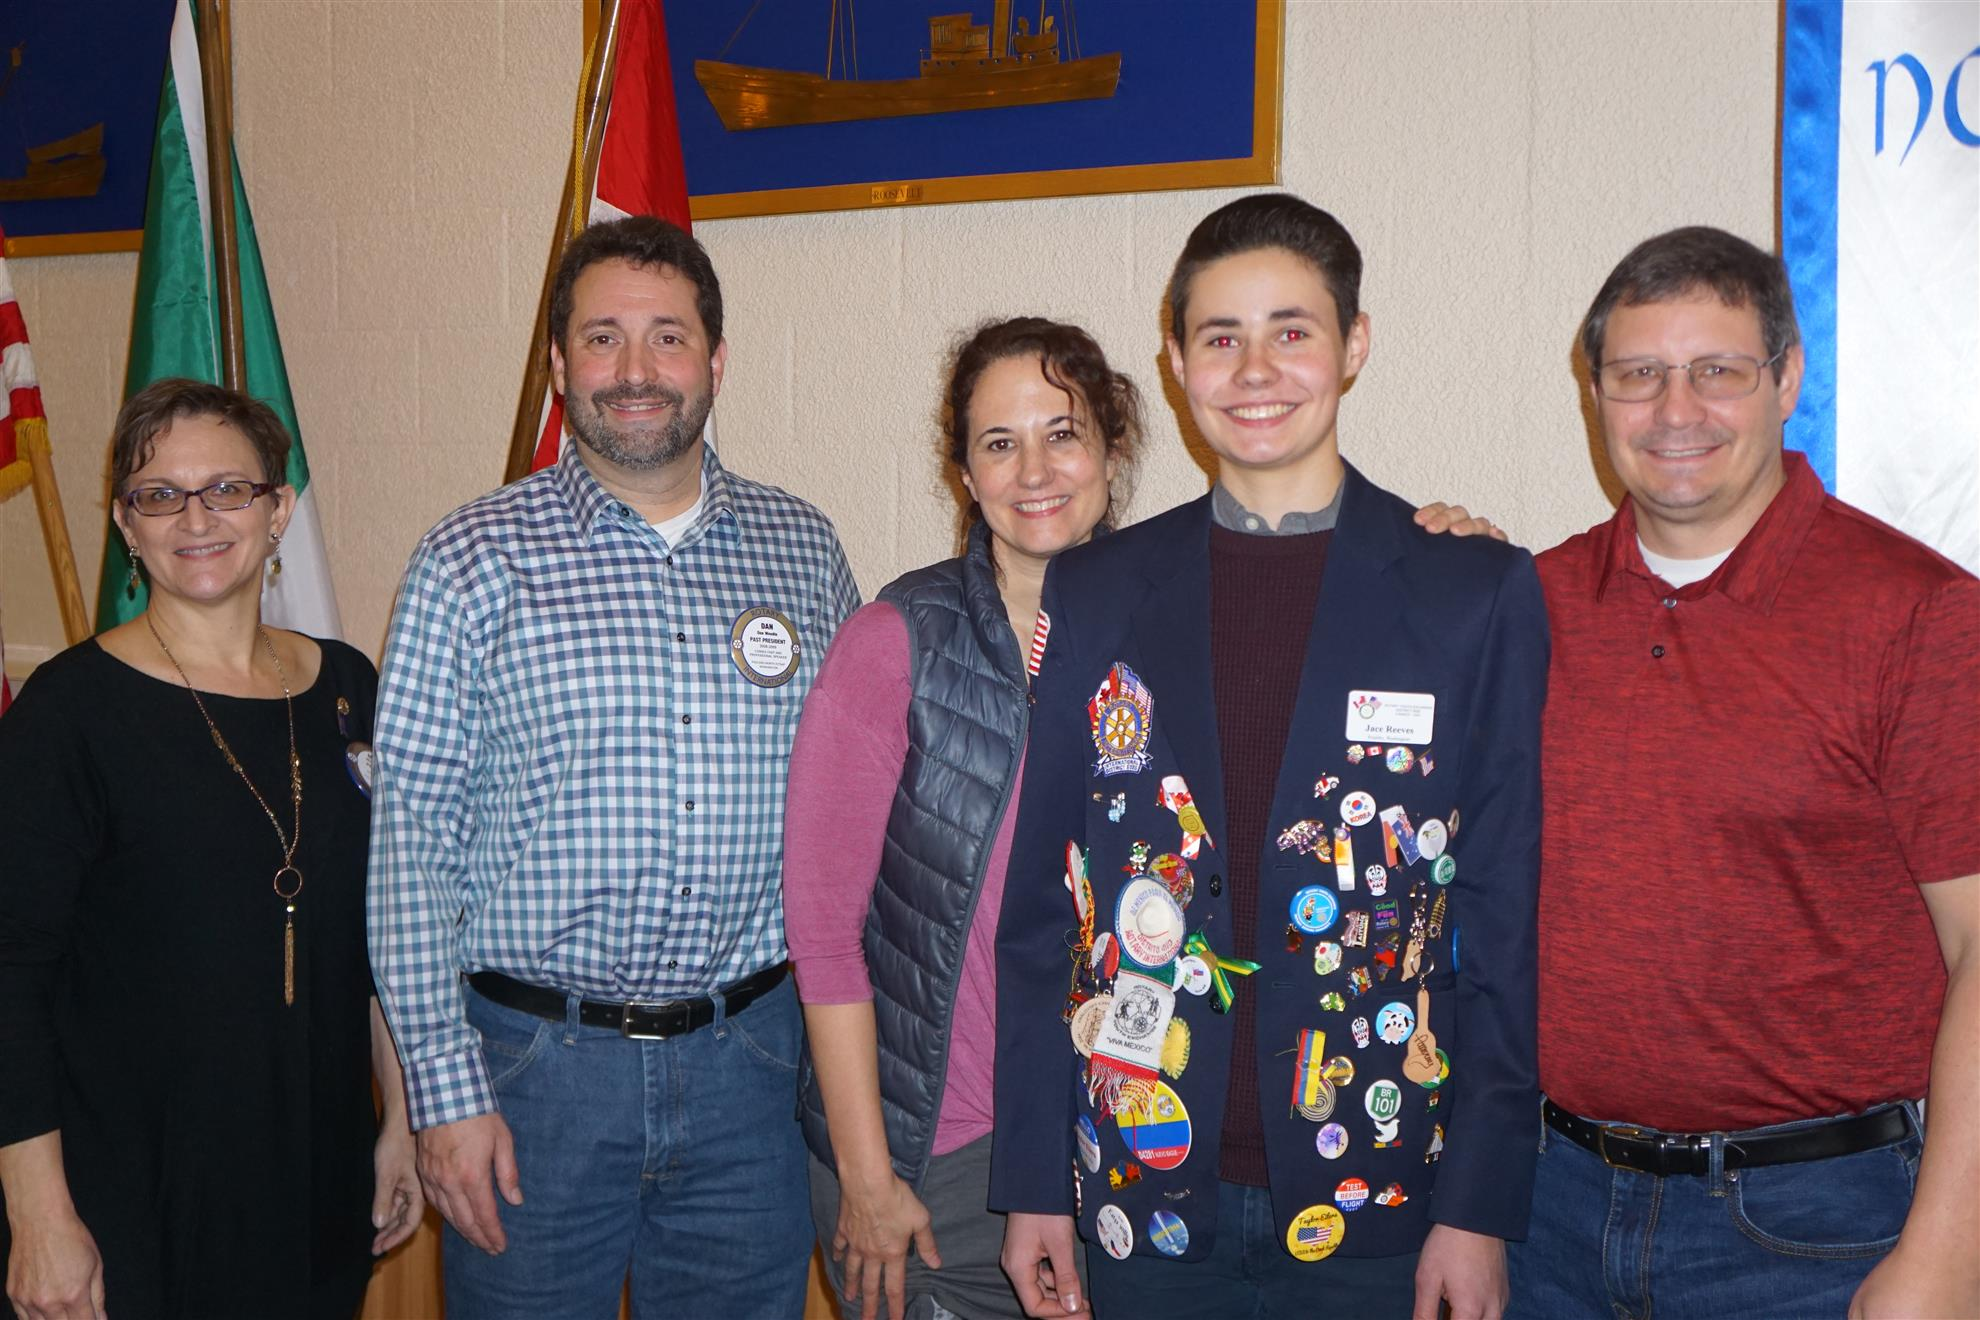 Jace Reeves shares his Rotary Exchange Experience in the Czech Republic